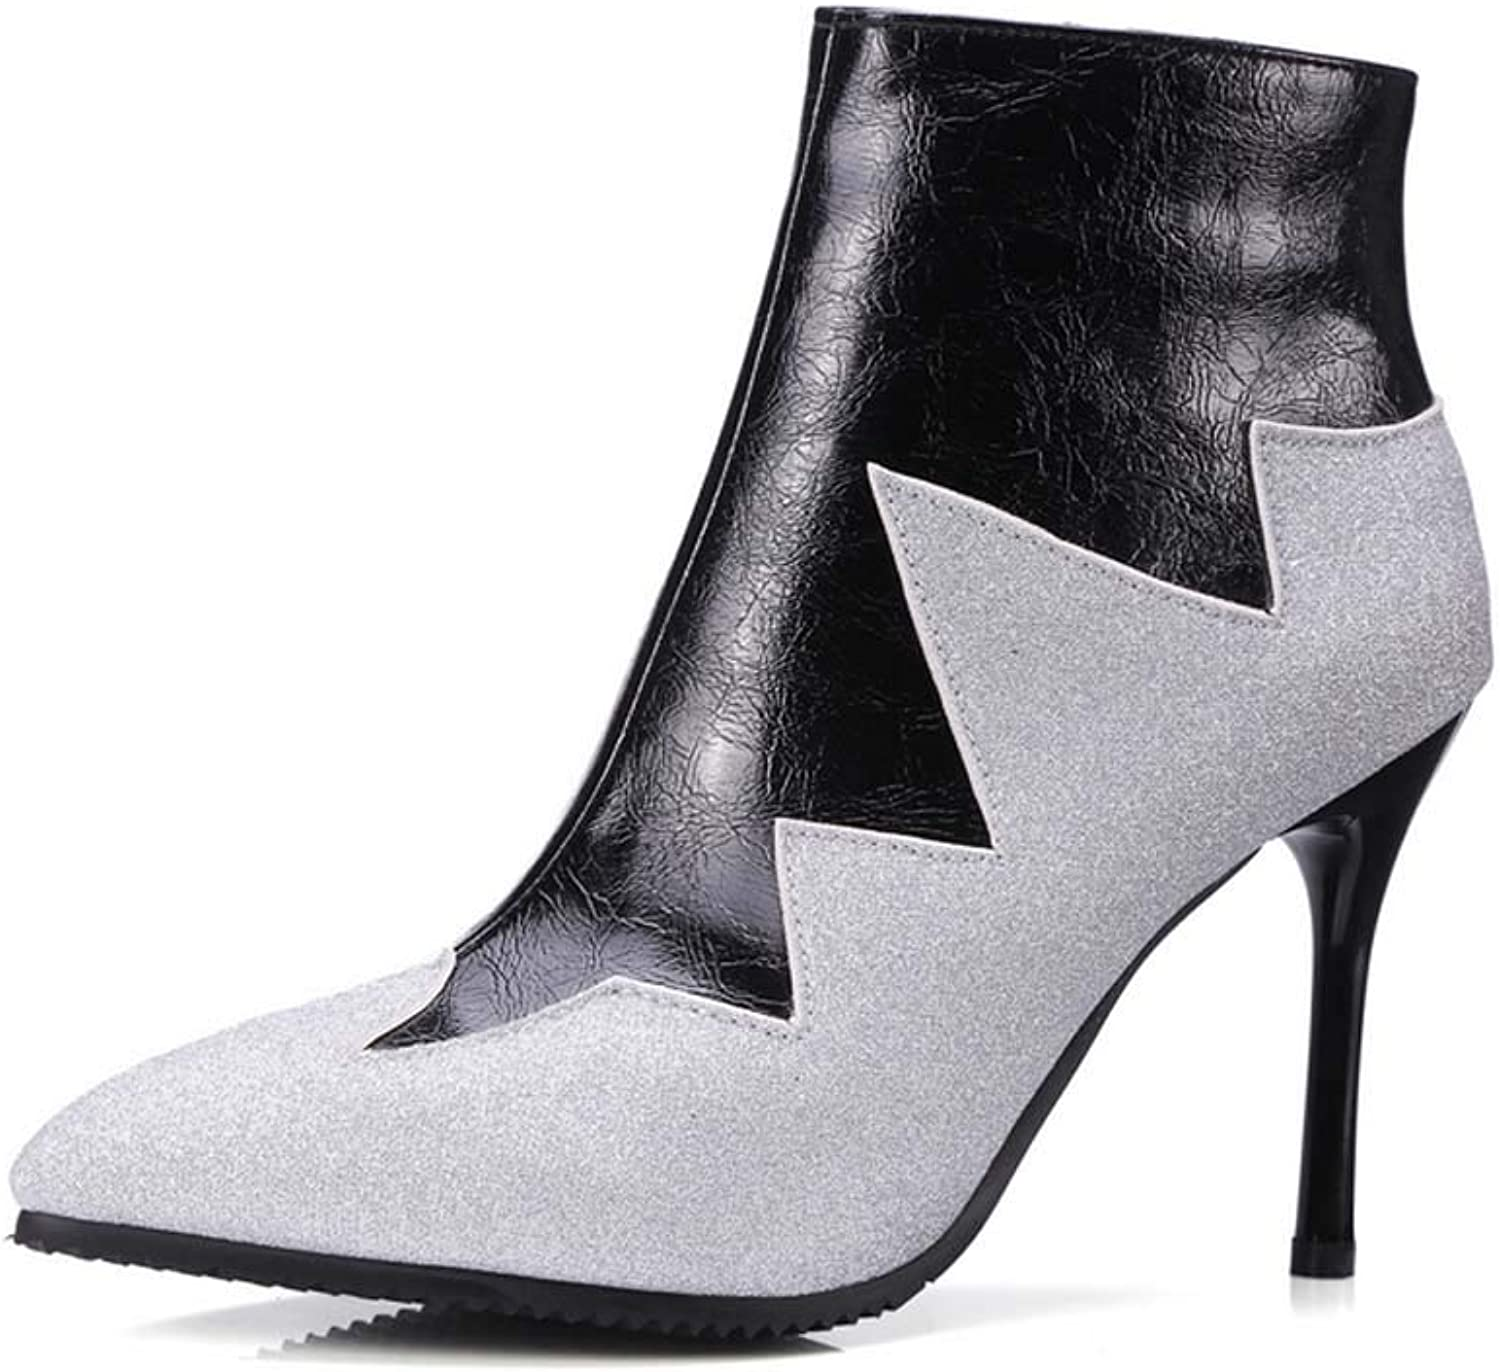 Women Pointed Ankle Boots 2018 Autumn Personality Mixed color Super High Heel Martin Boots